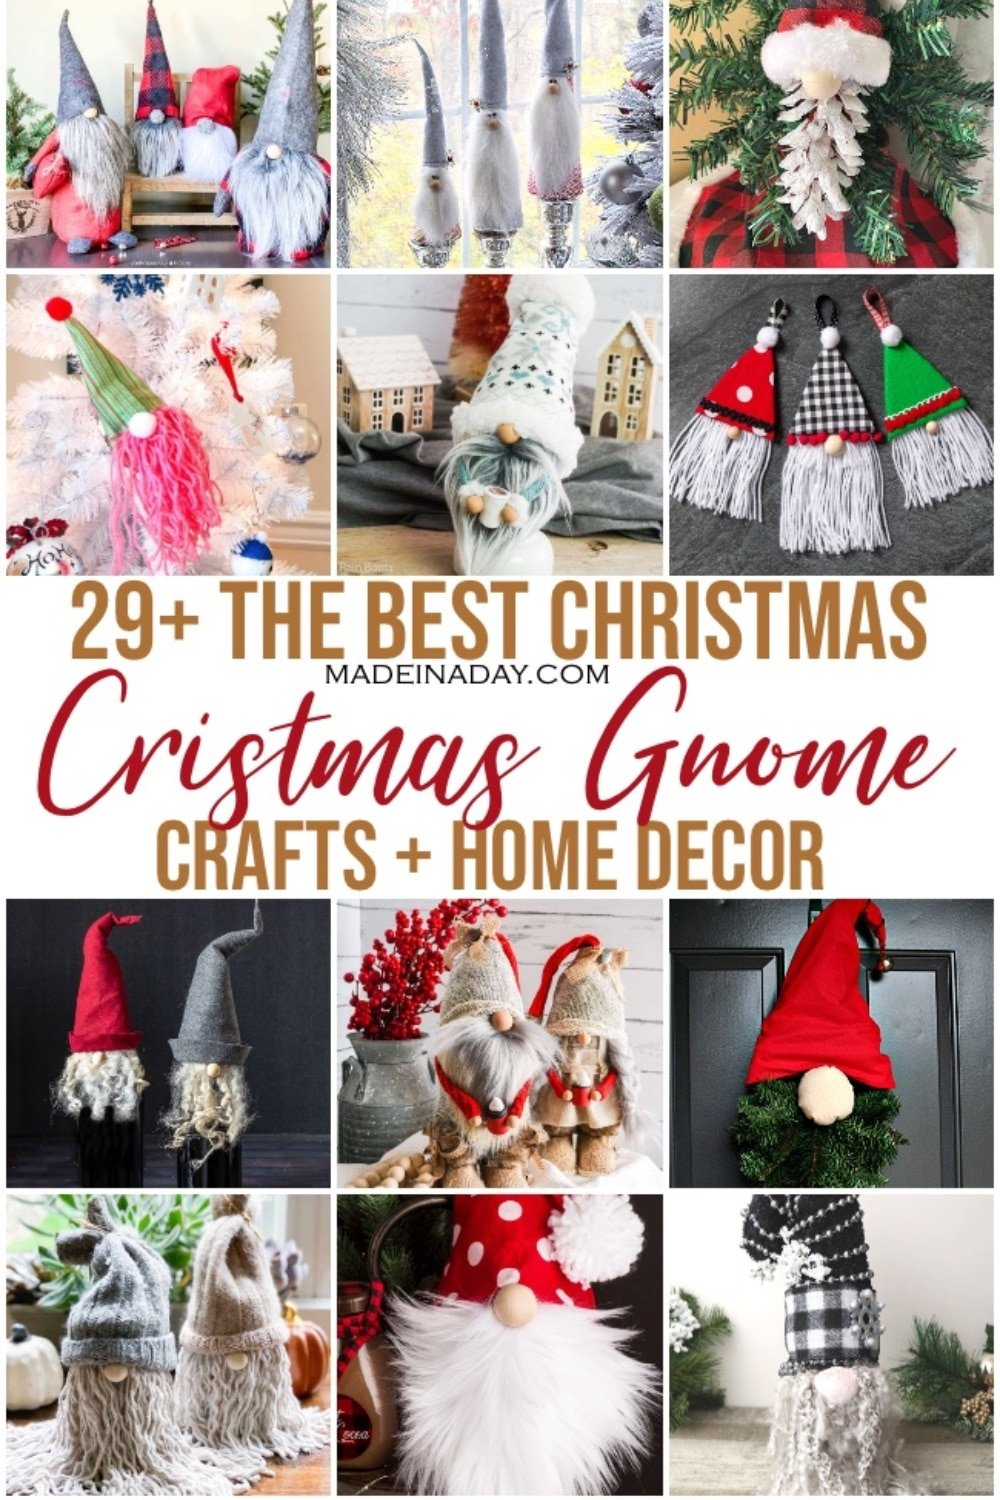 29+ Awesome Christmas Gnome Craft Ideas